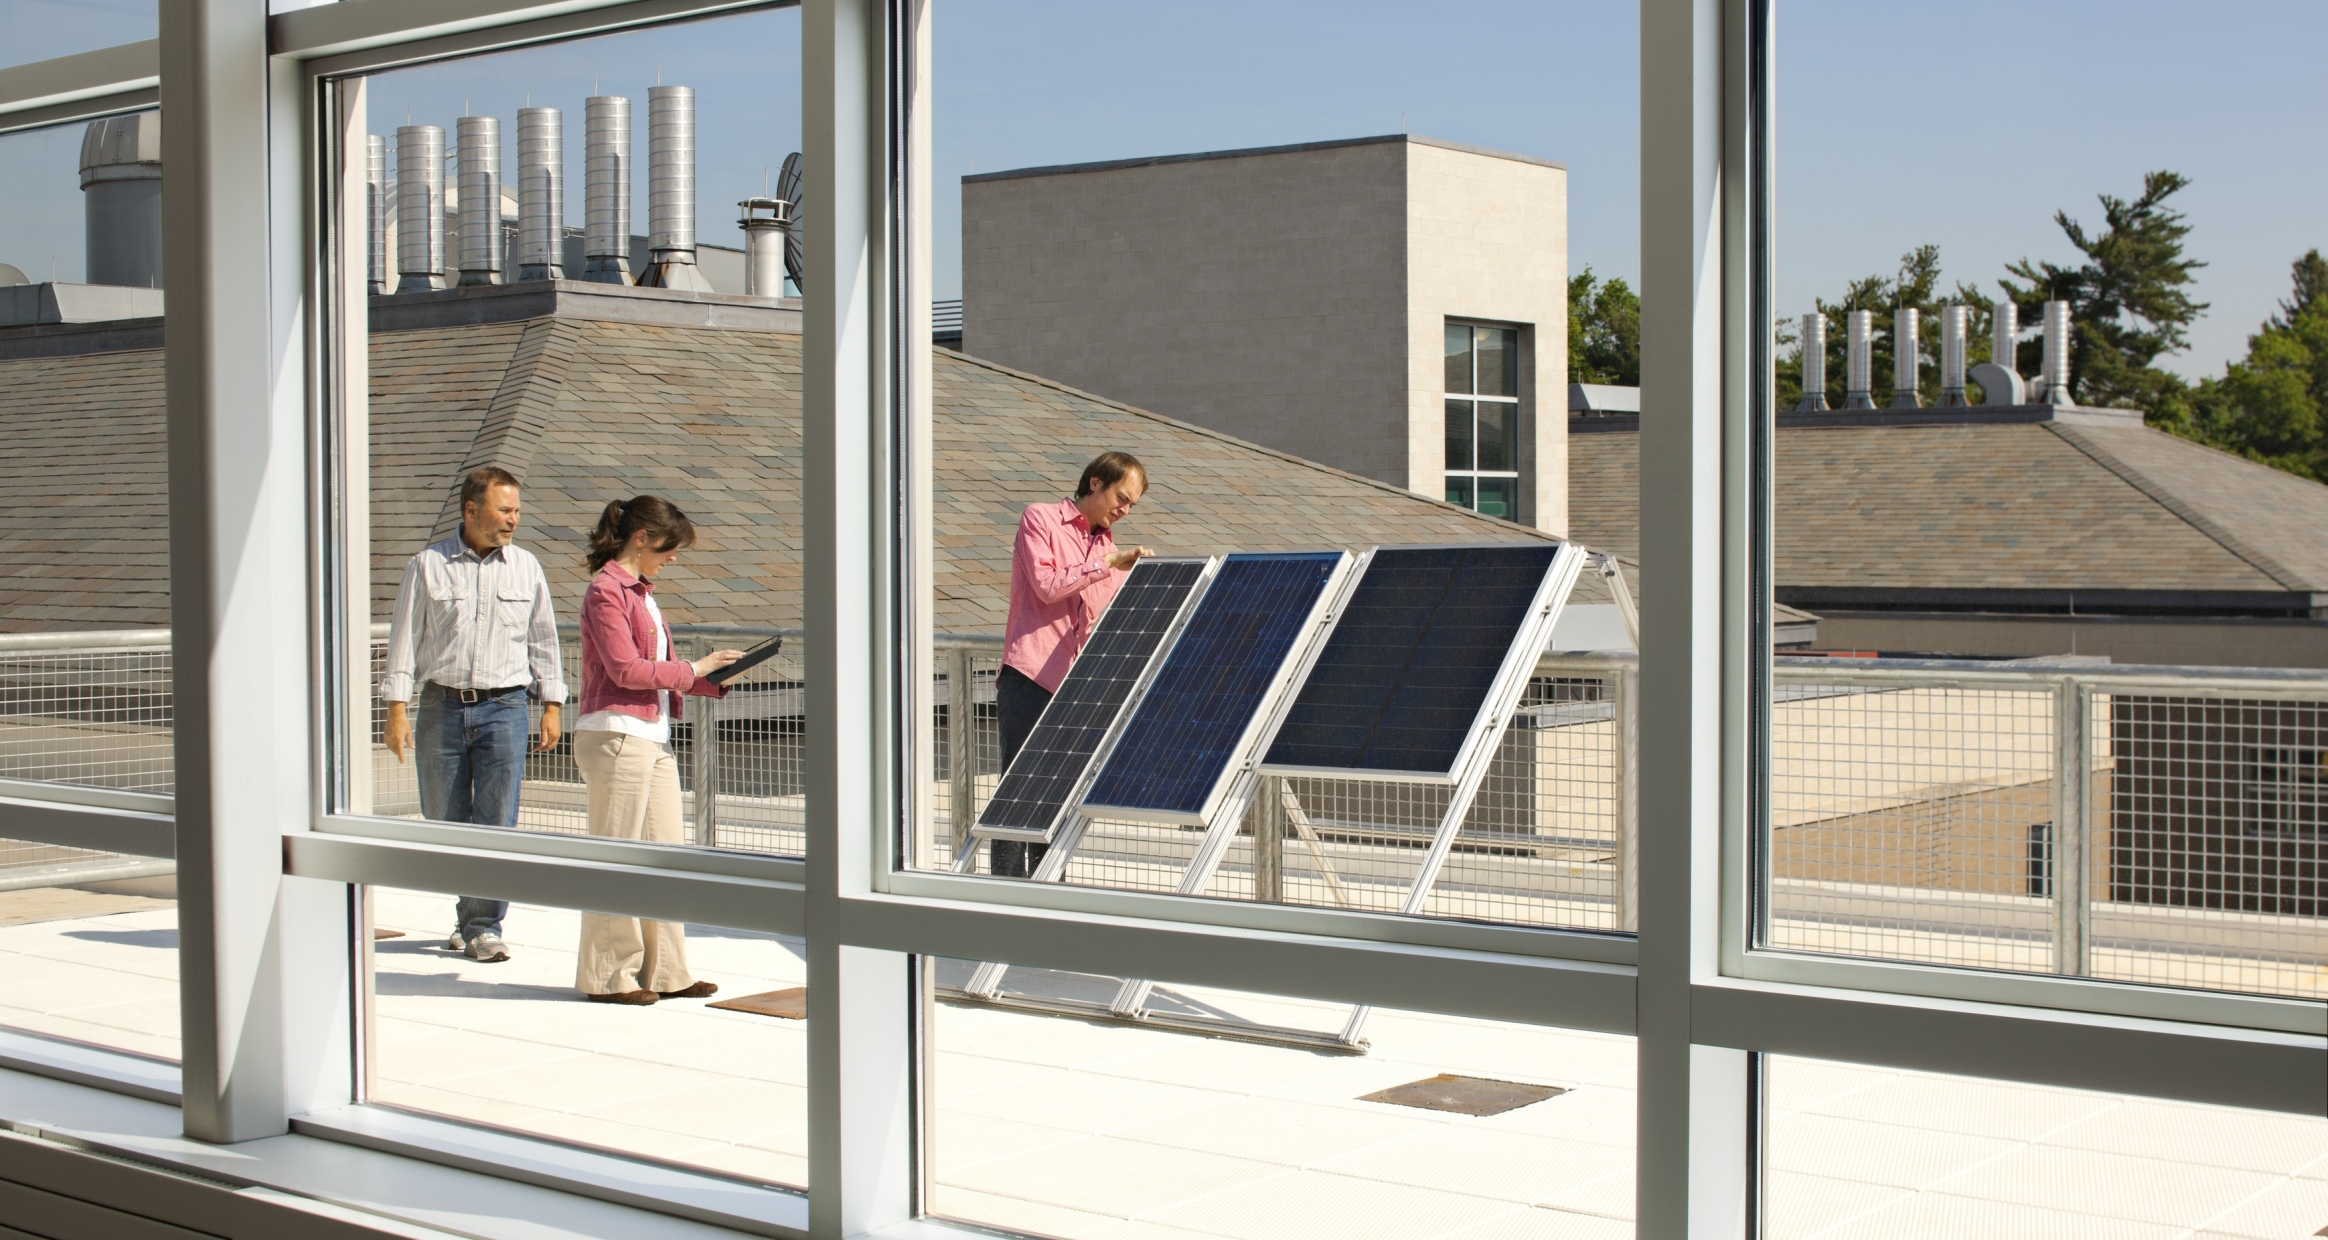 Photovoltaic solar panels on the roof